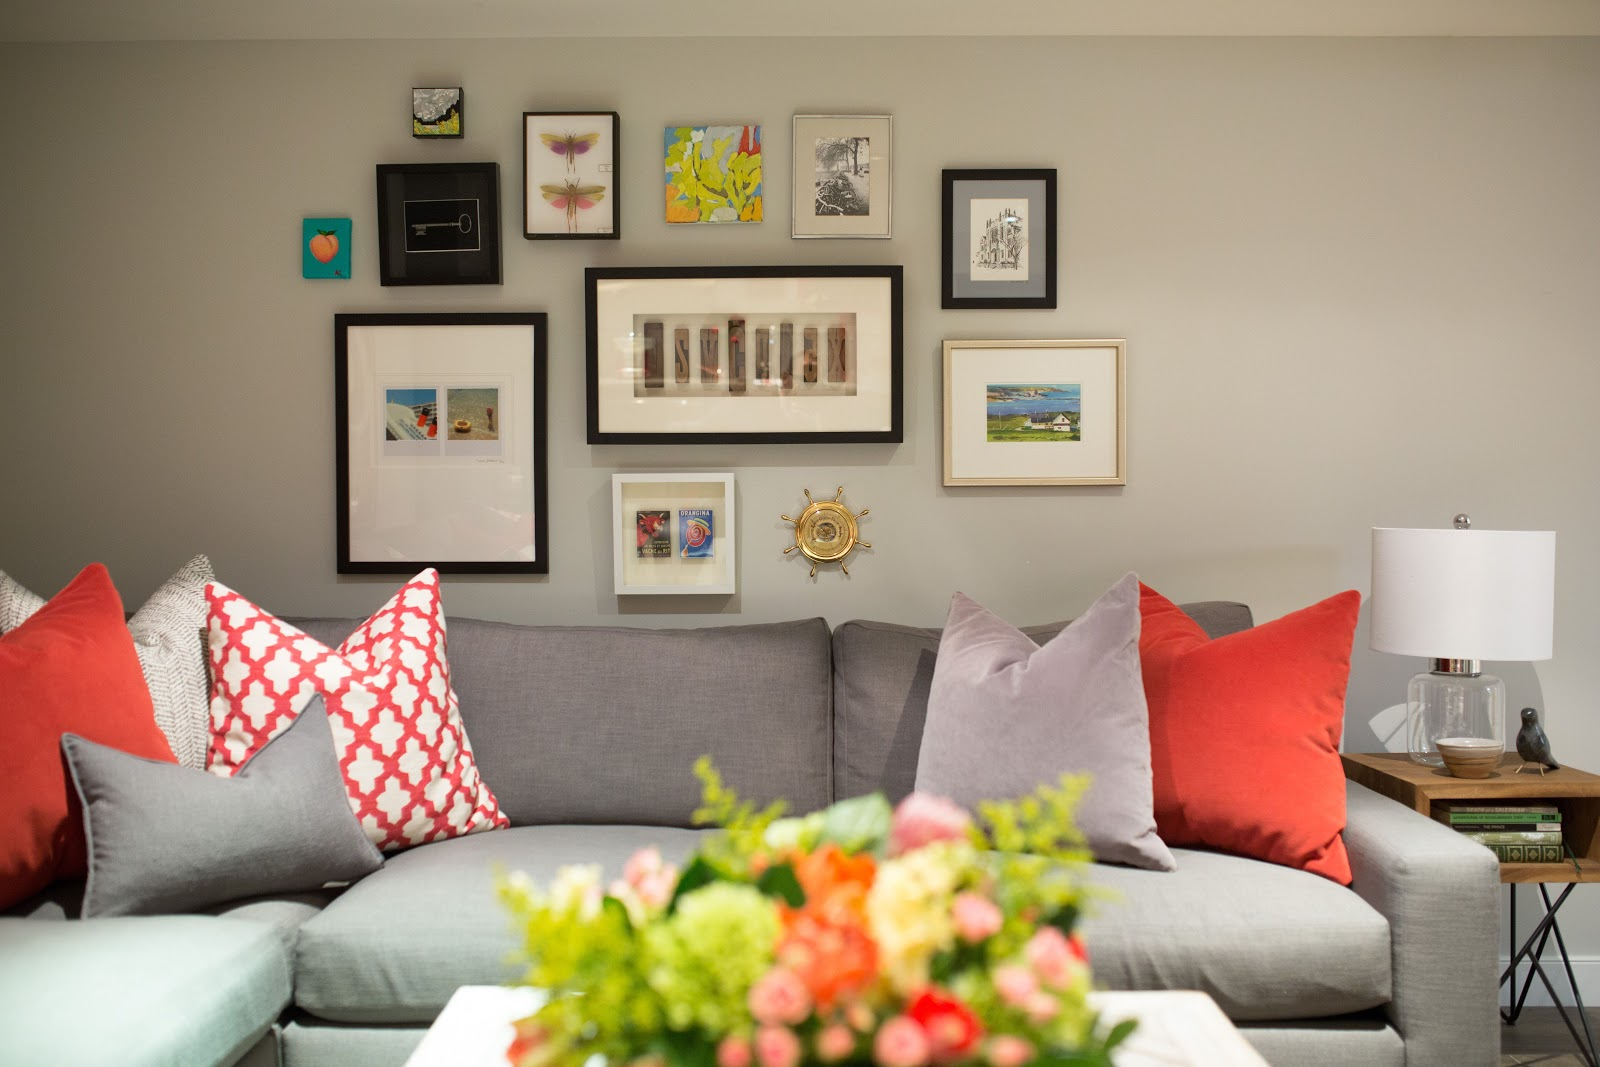 gallery wall framed travel finds from abroad keys photos butterflies art calgary interior design